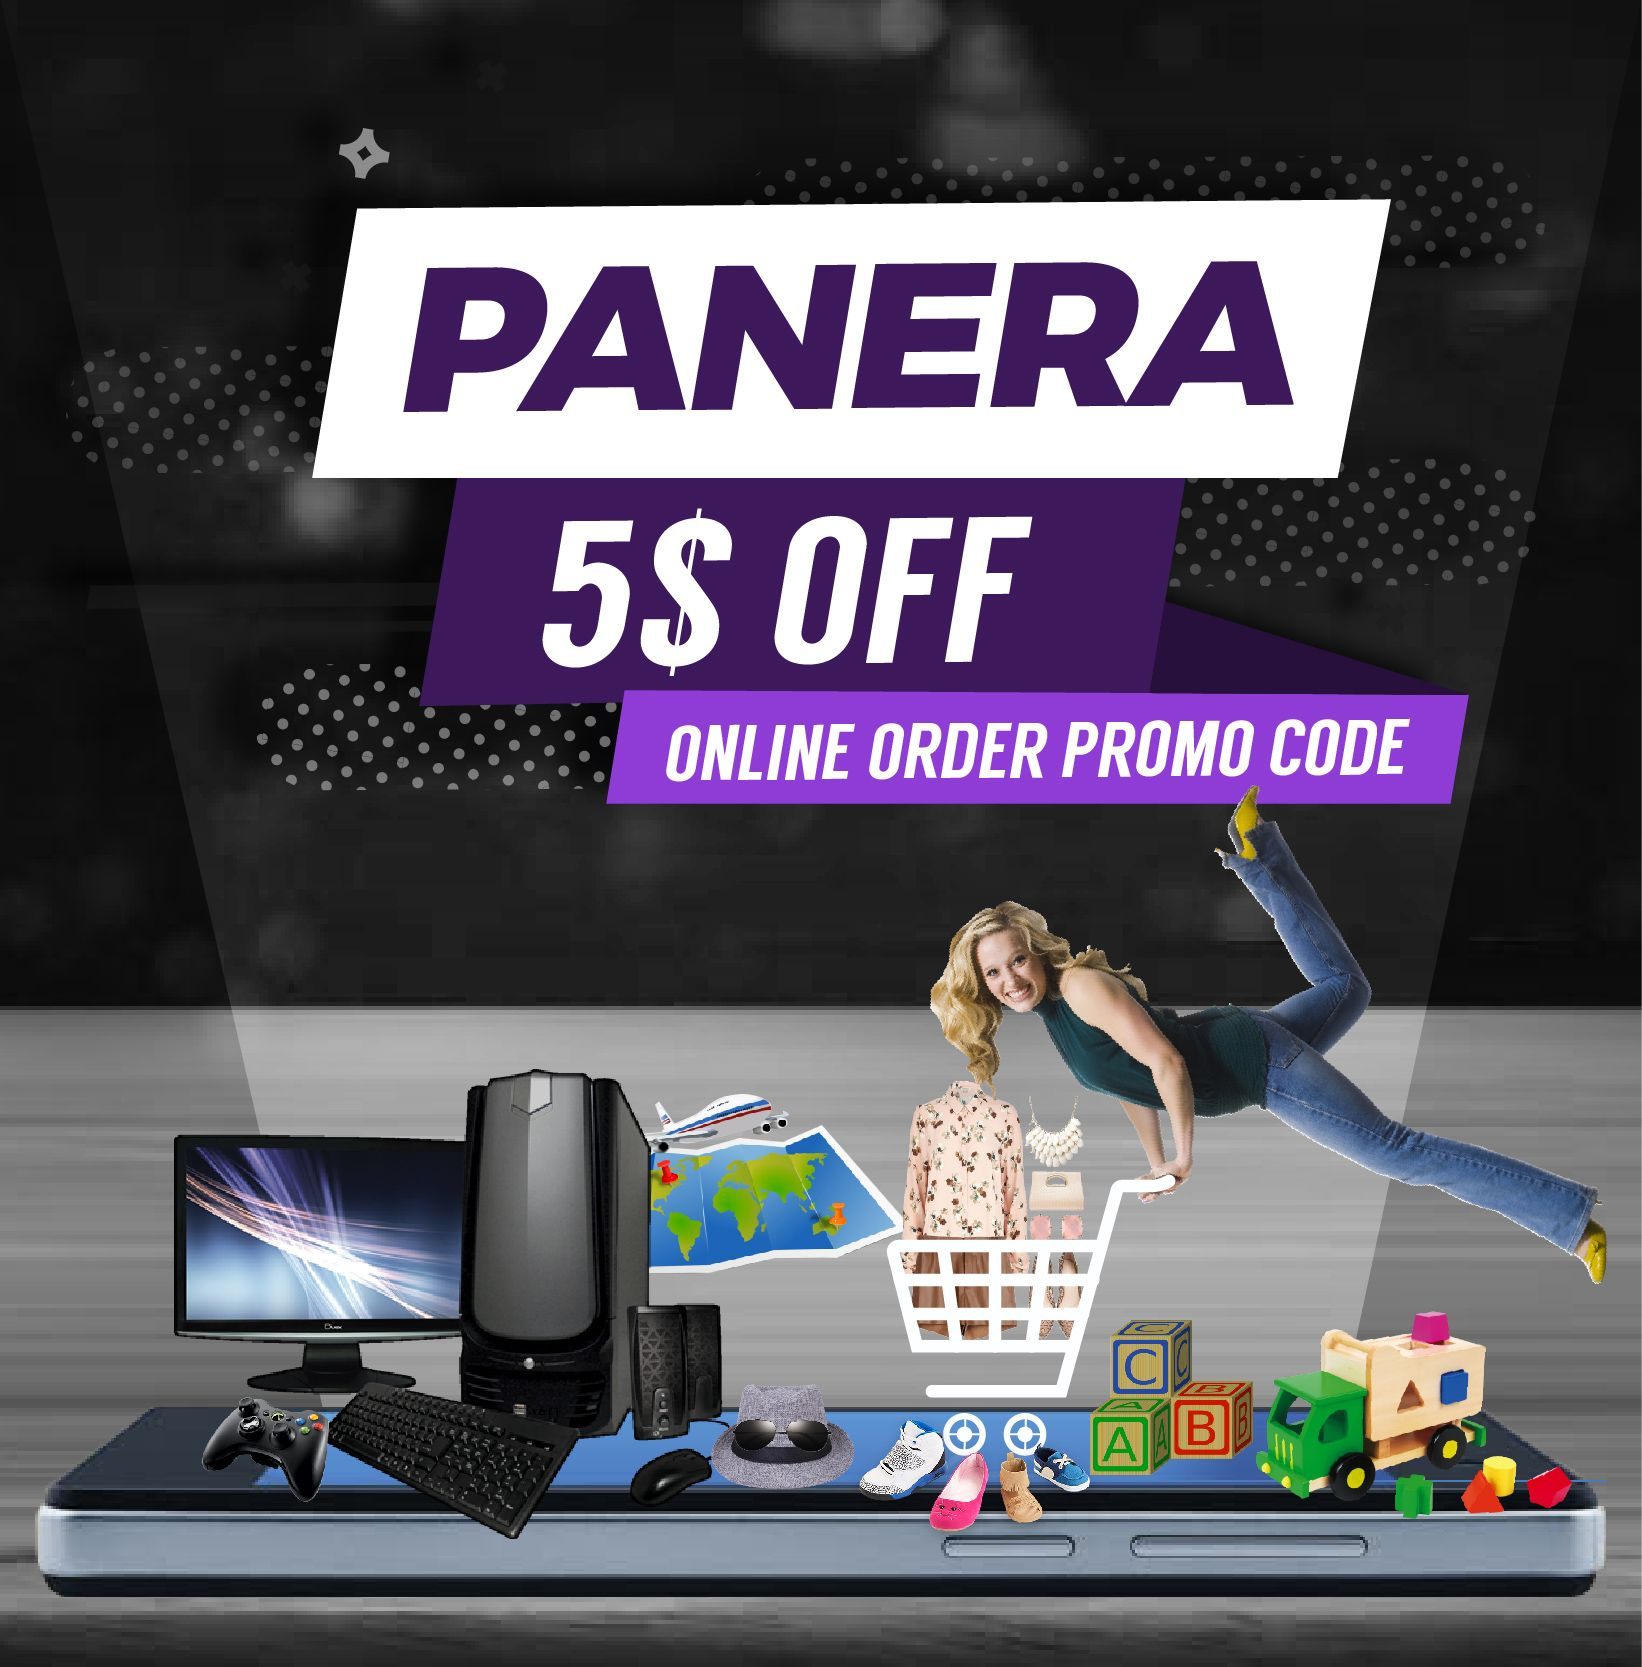 Panera 5 off Online Order Promo Code and discount codes